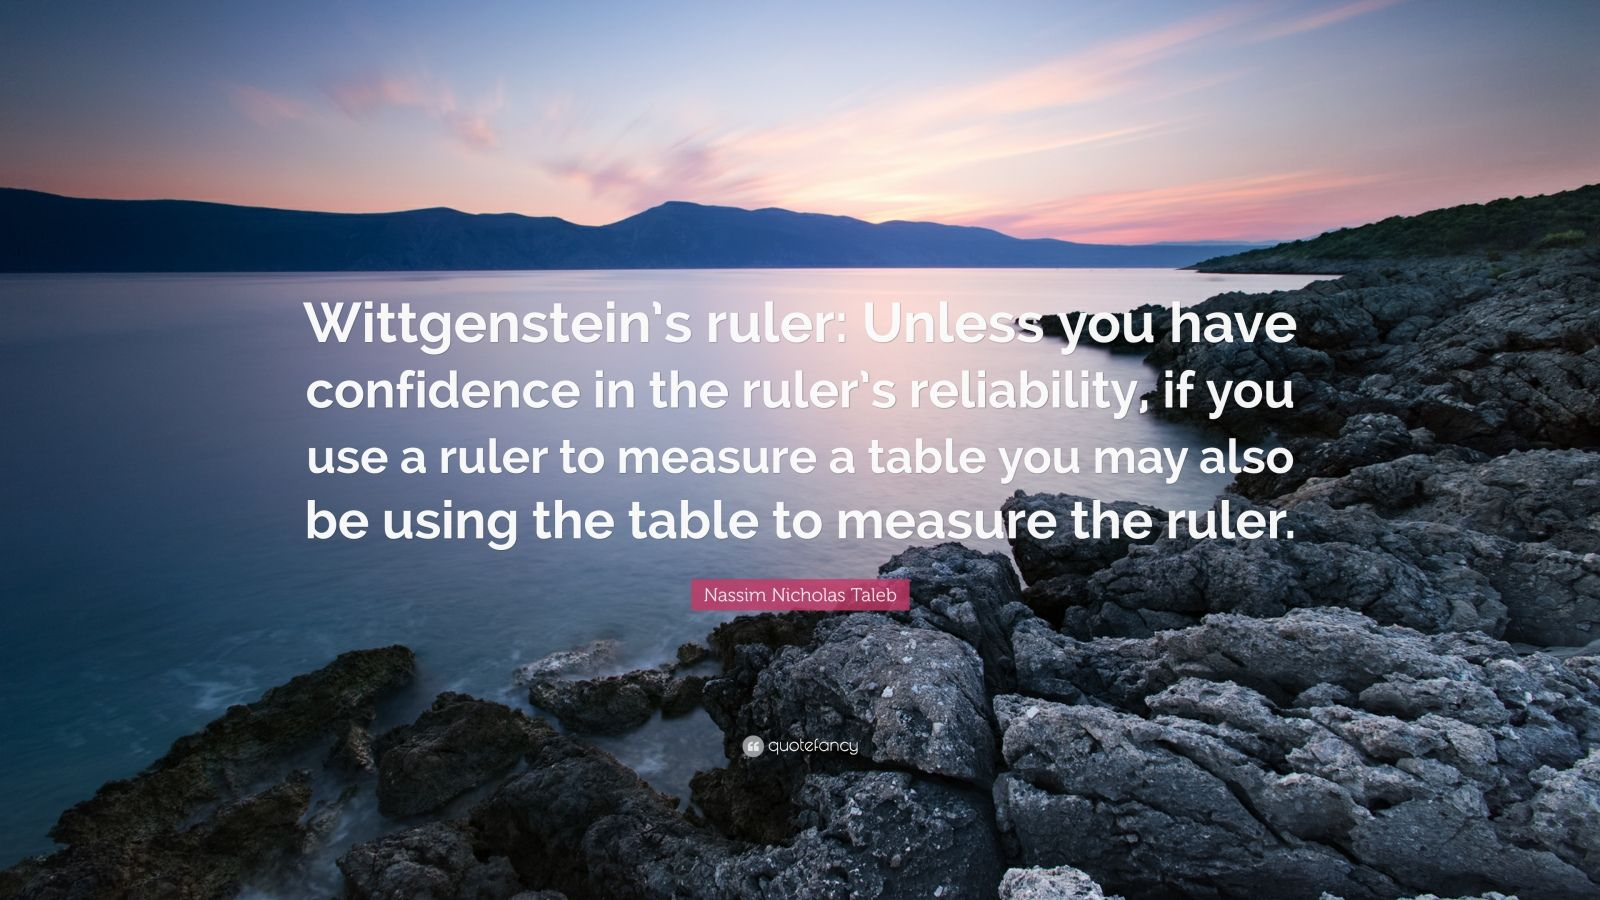 "Nassim Nicholas Taleb Quote: ""Wittgenstein's ruler: Unless you have confidence in the ruler's reliability, if you use a ruler to measure a table you may also be using the table to measure the ruler."""